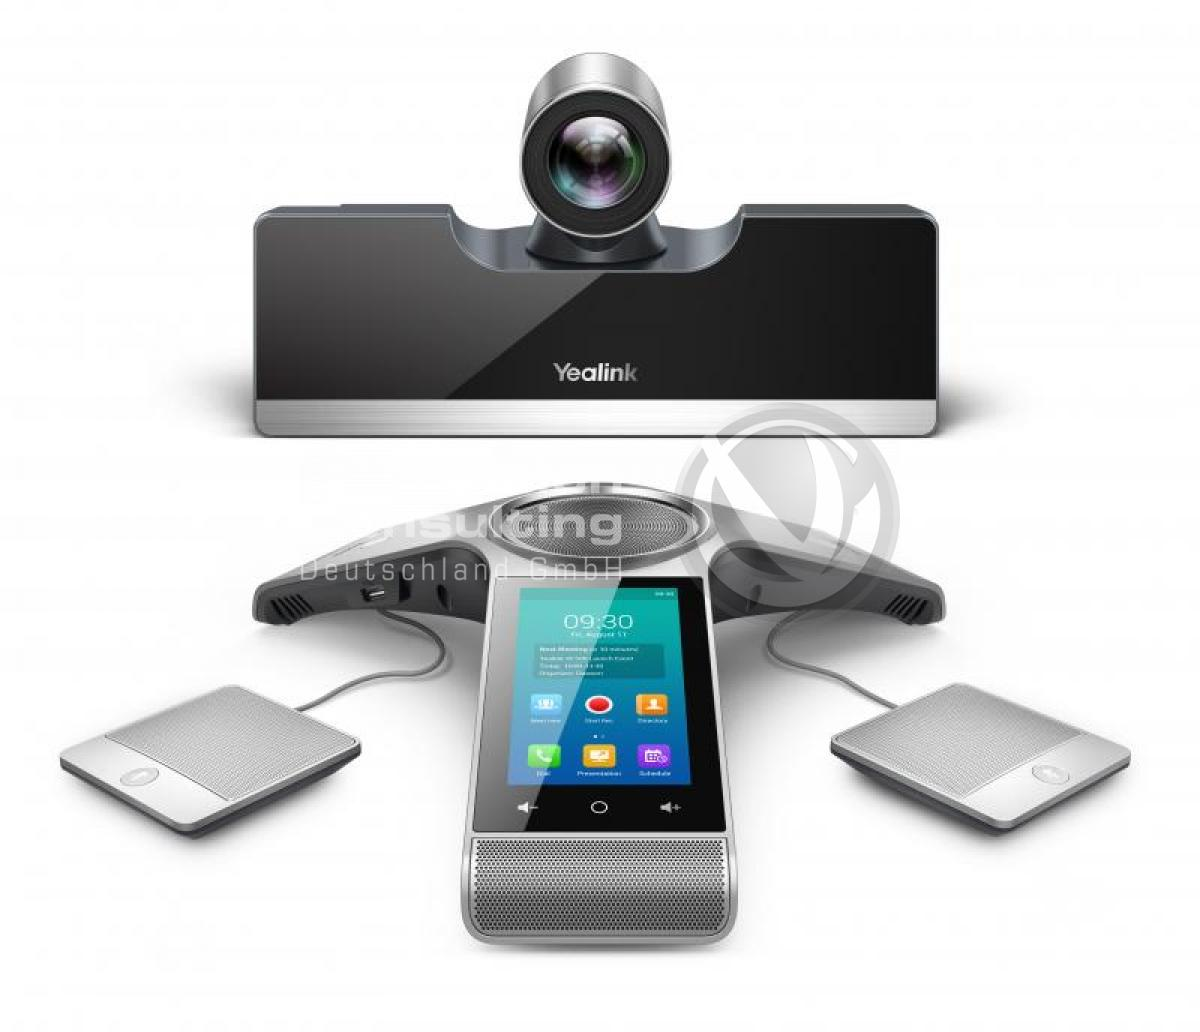 Yealink VC500-Phone videoconferencing system